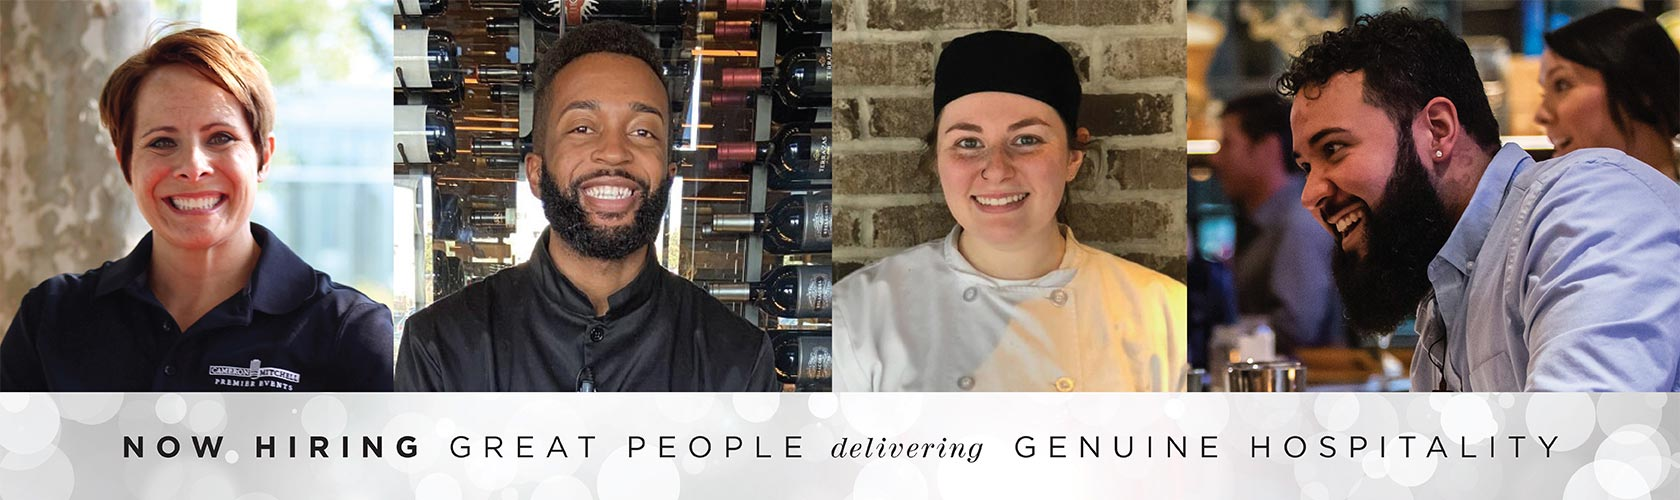 Now Hiring Great People Delivering Genuine Hospitality